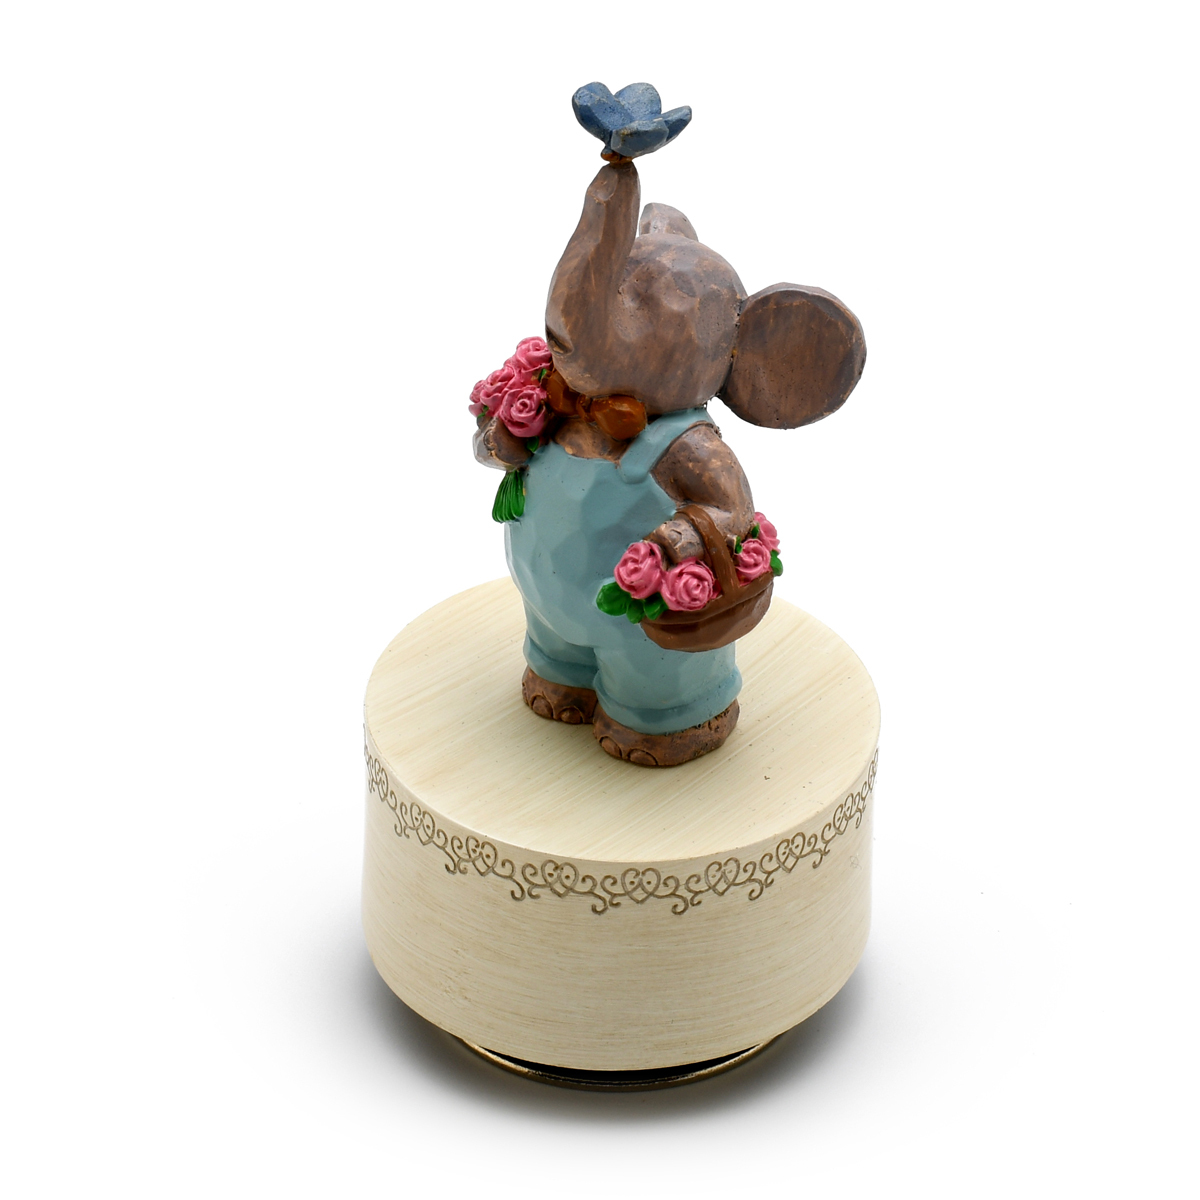 Sculpted 18 Note Curious Elephant with Butterfly Musical Figurine - Choose Your Song